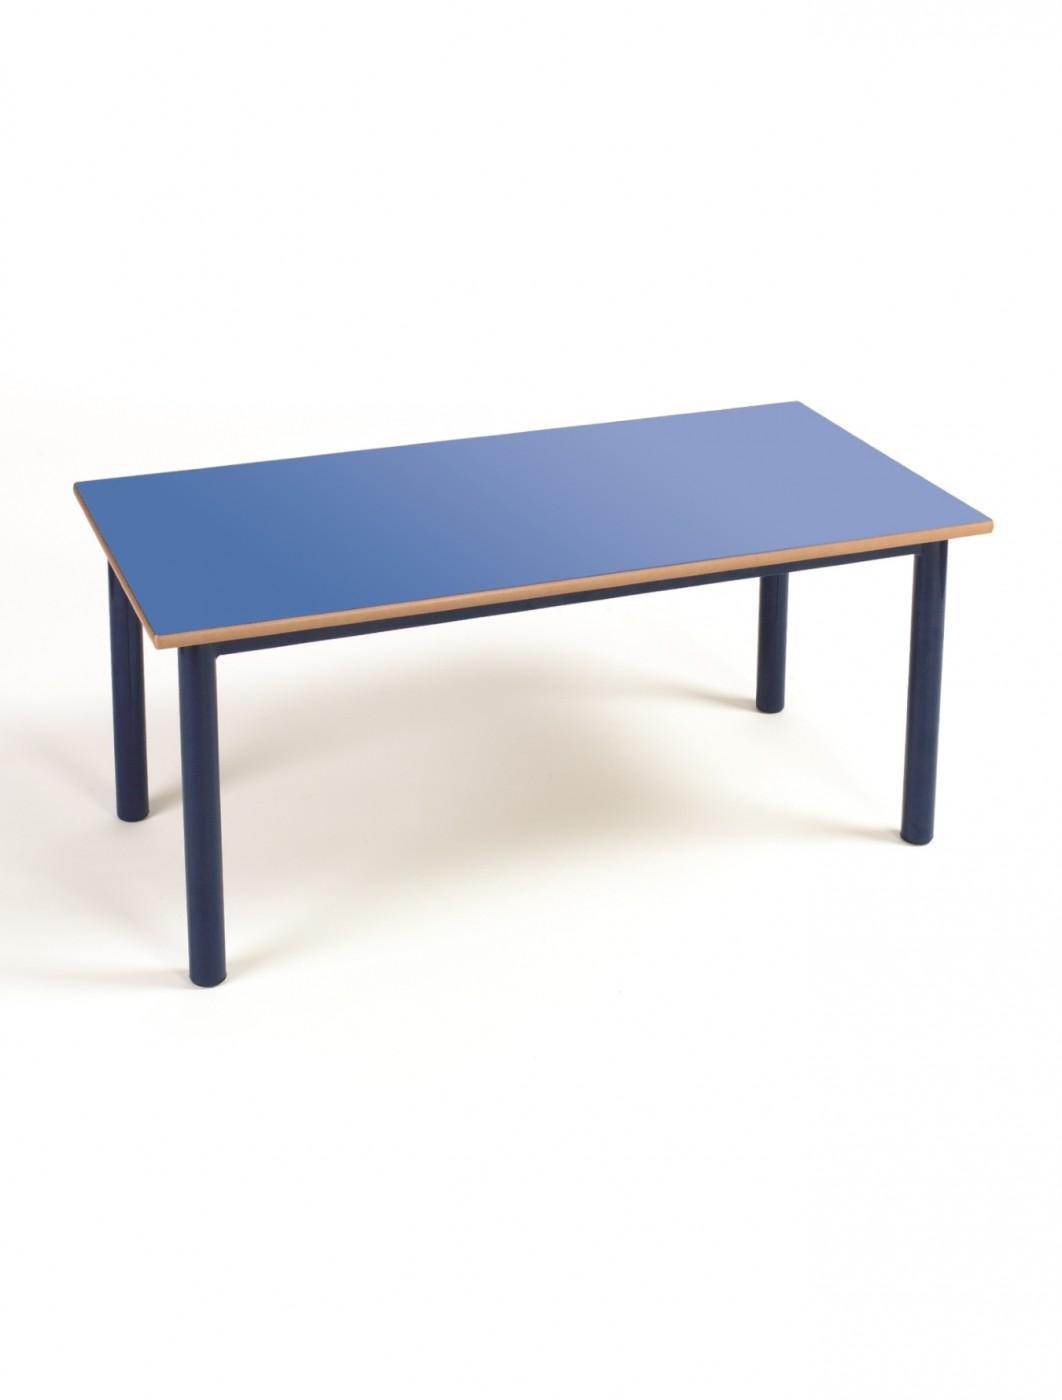 Exceptionnel Premium Nursery Tables   1100x550mm Rectangular Nursery Tables NURS 115 MD    Enlarged View